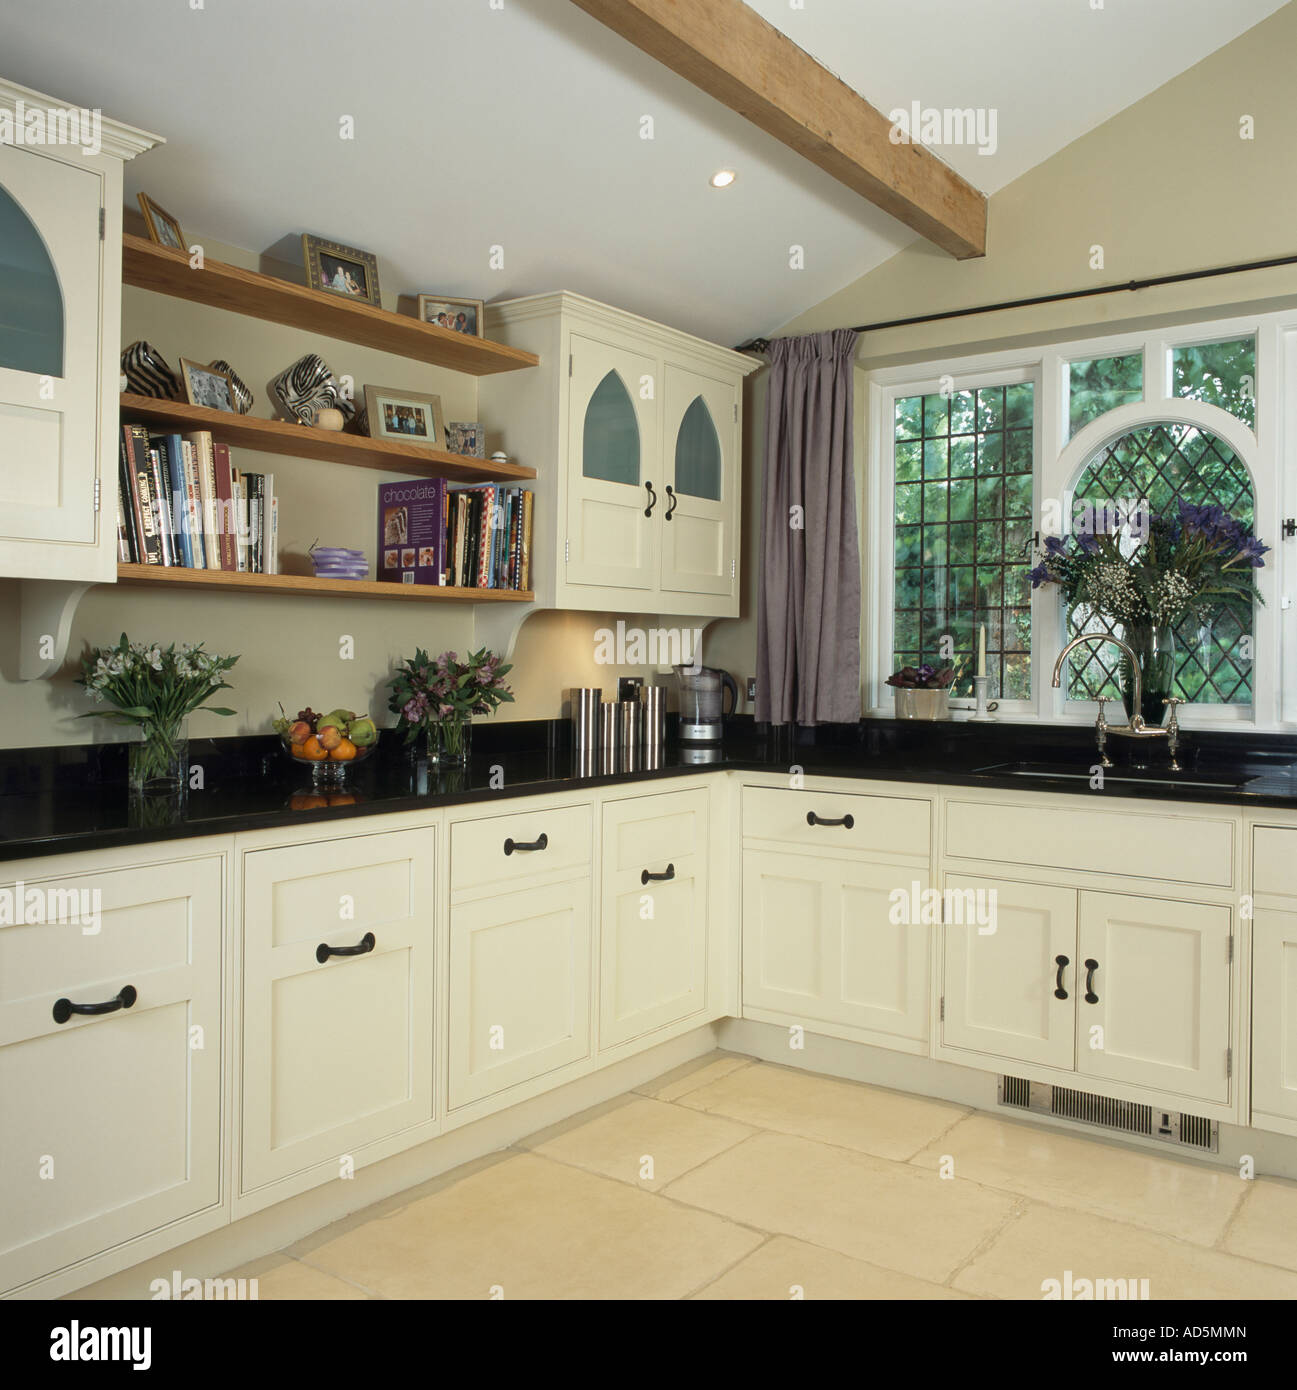 ideas familiar build cupboards cabinet colors with popular painting for black corner opener examples backsplash the your dark old can cabinets white own under wood cupboard kitchen plyboo spacemaker